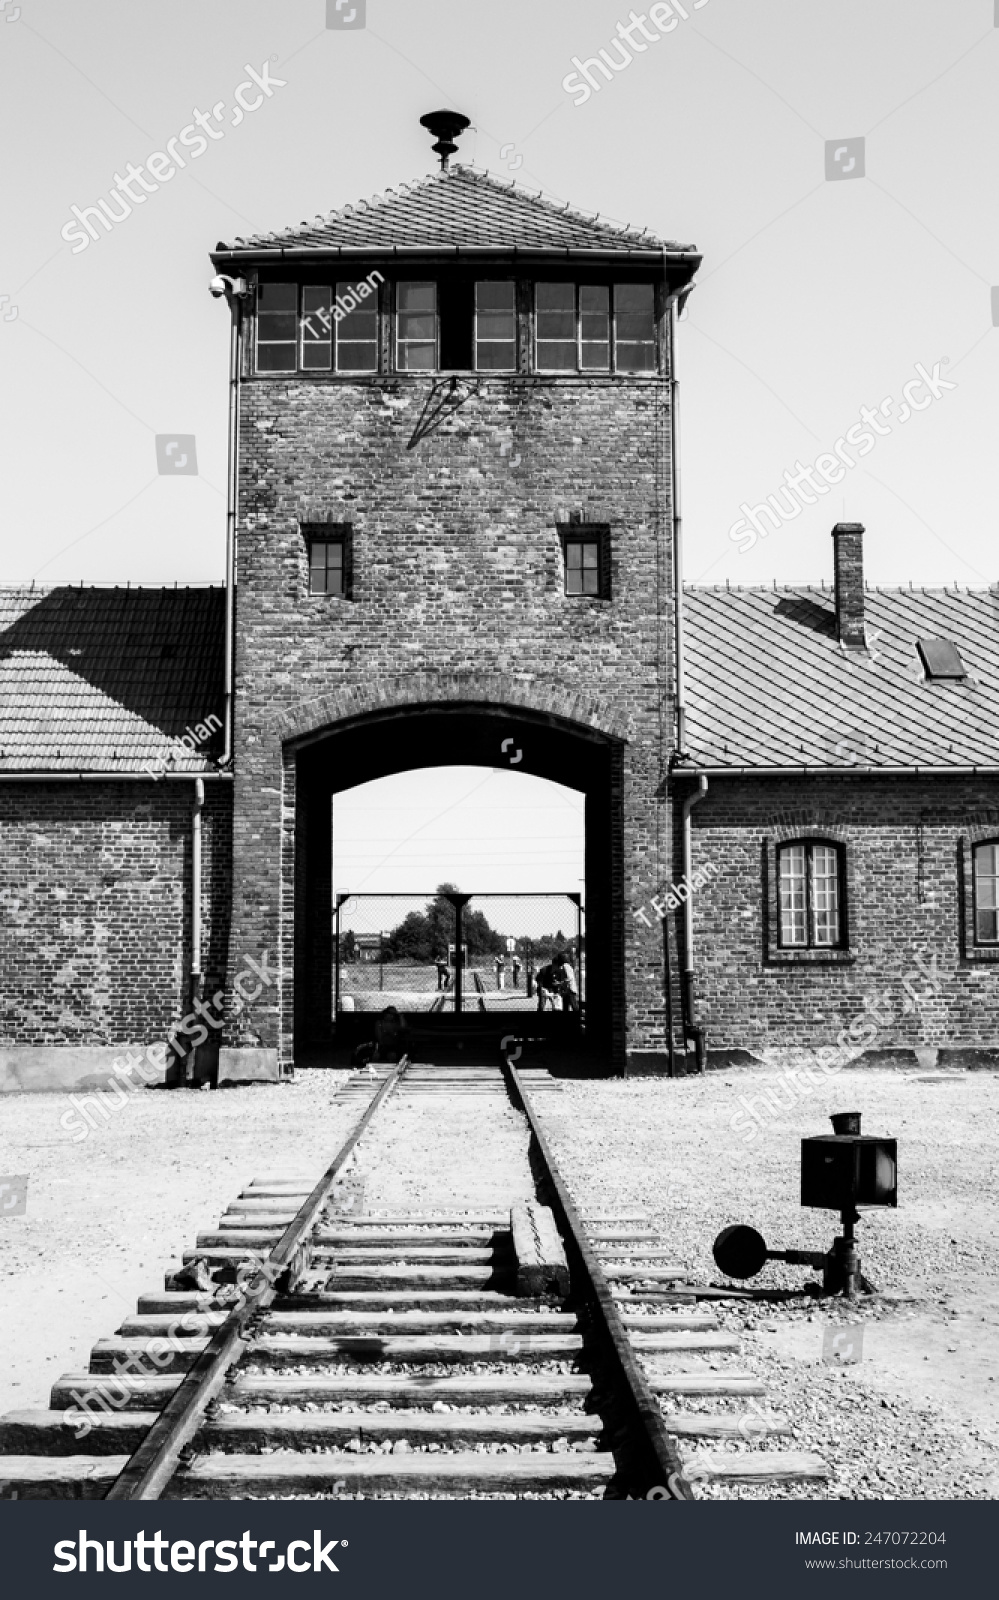 """a history of the auschwitz concentration camp in poland About auschwitz concentration camp auschwitz birkenau was a concentration camp founded by the nazis near the town of oświęcim or """"auschwitz"""" in poland and which became the largest and most infamous camp of them all."""